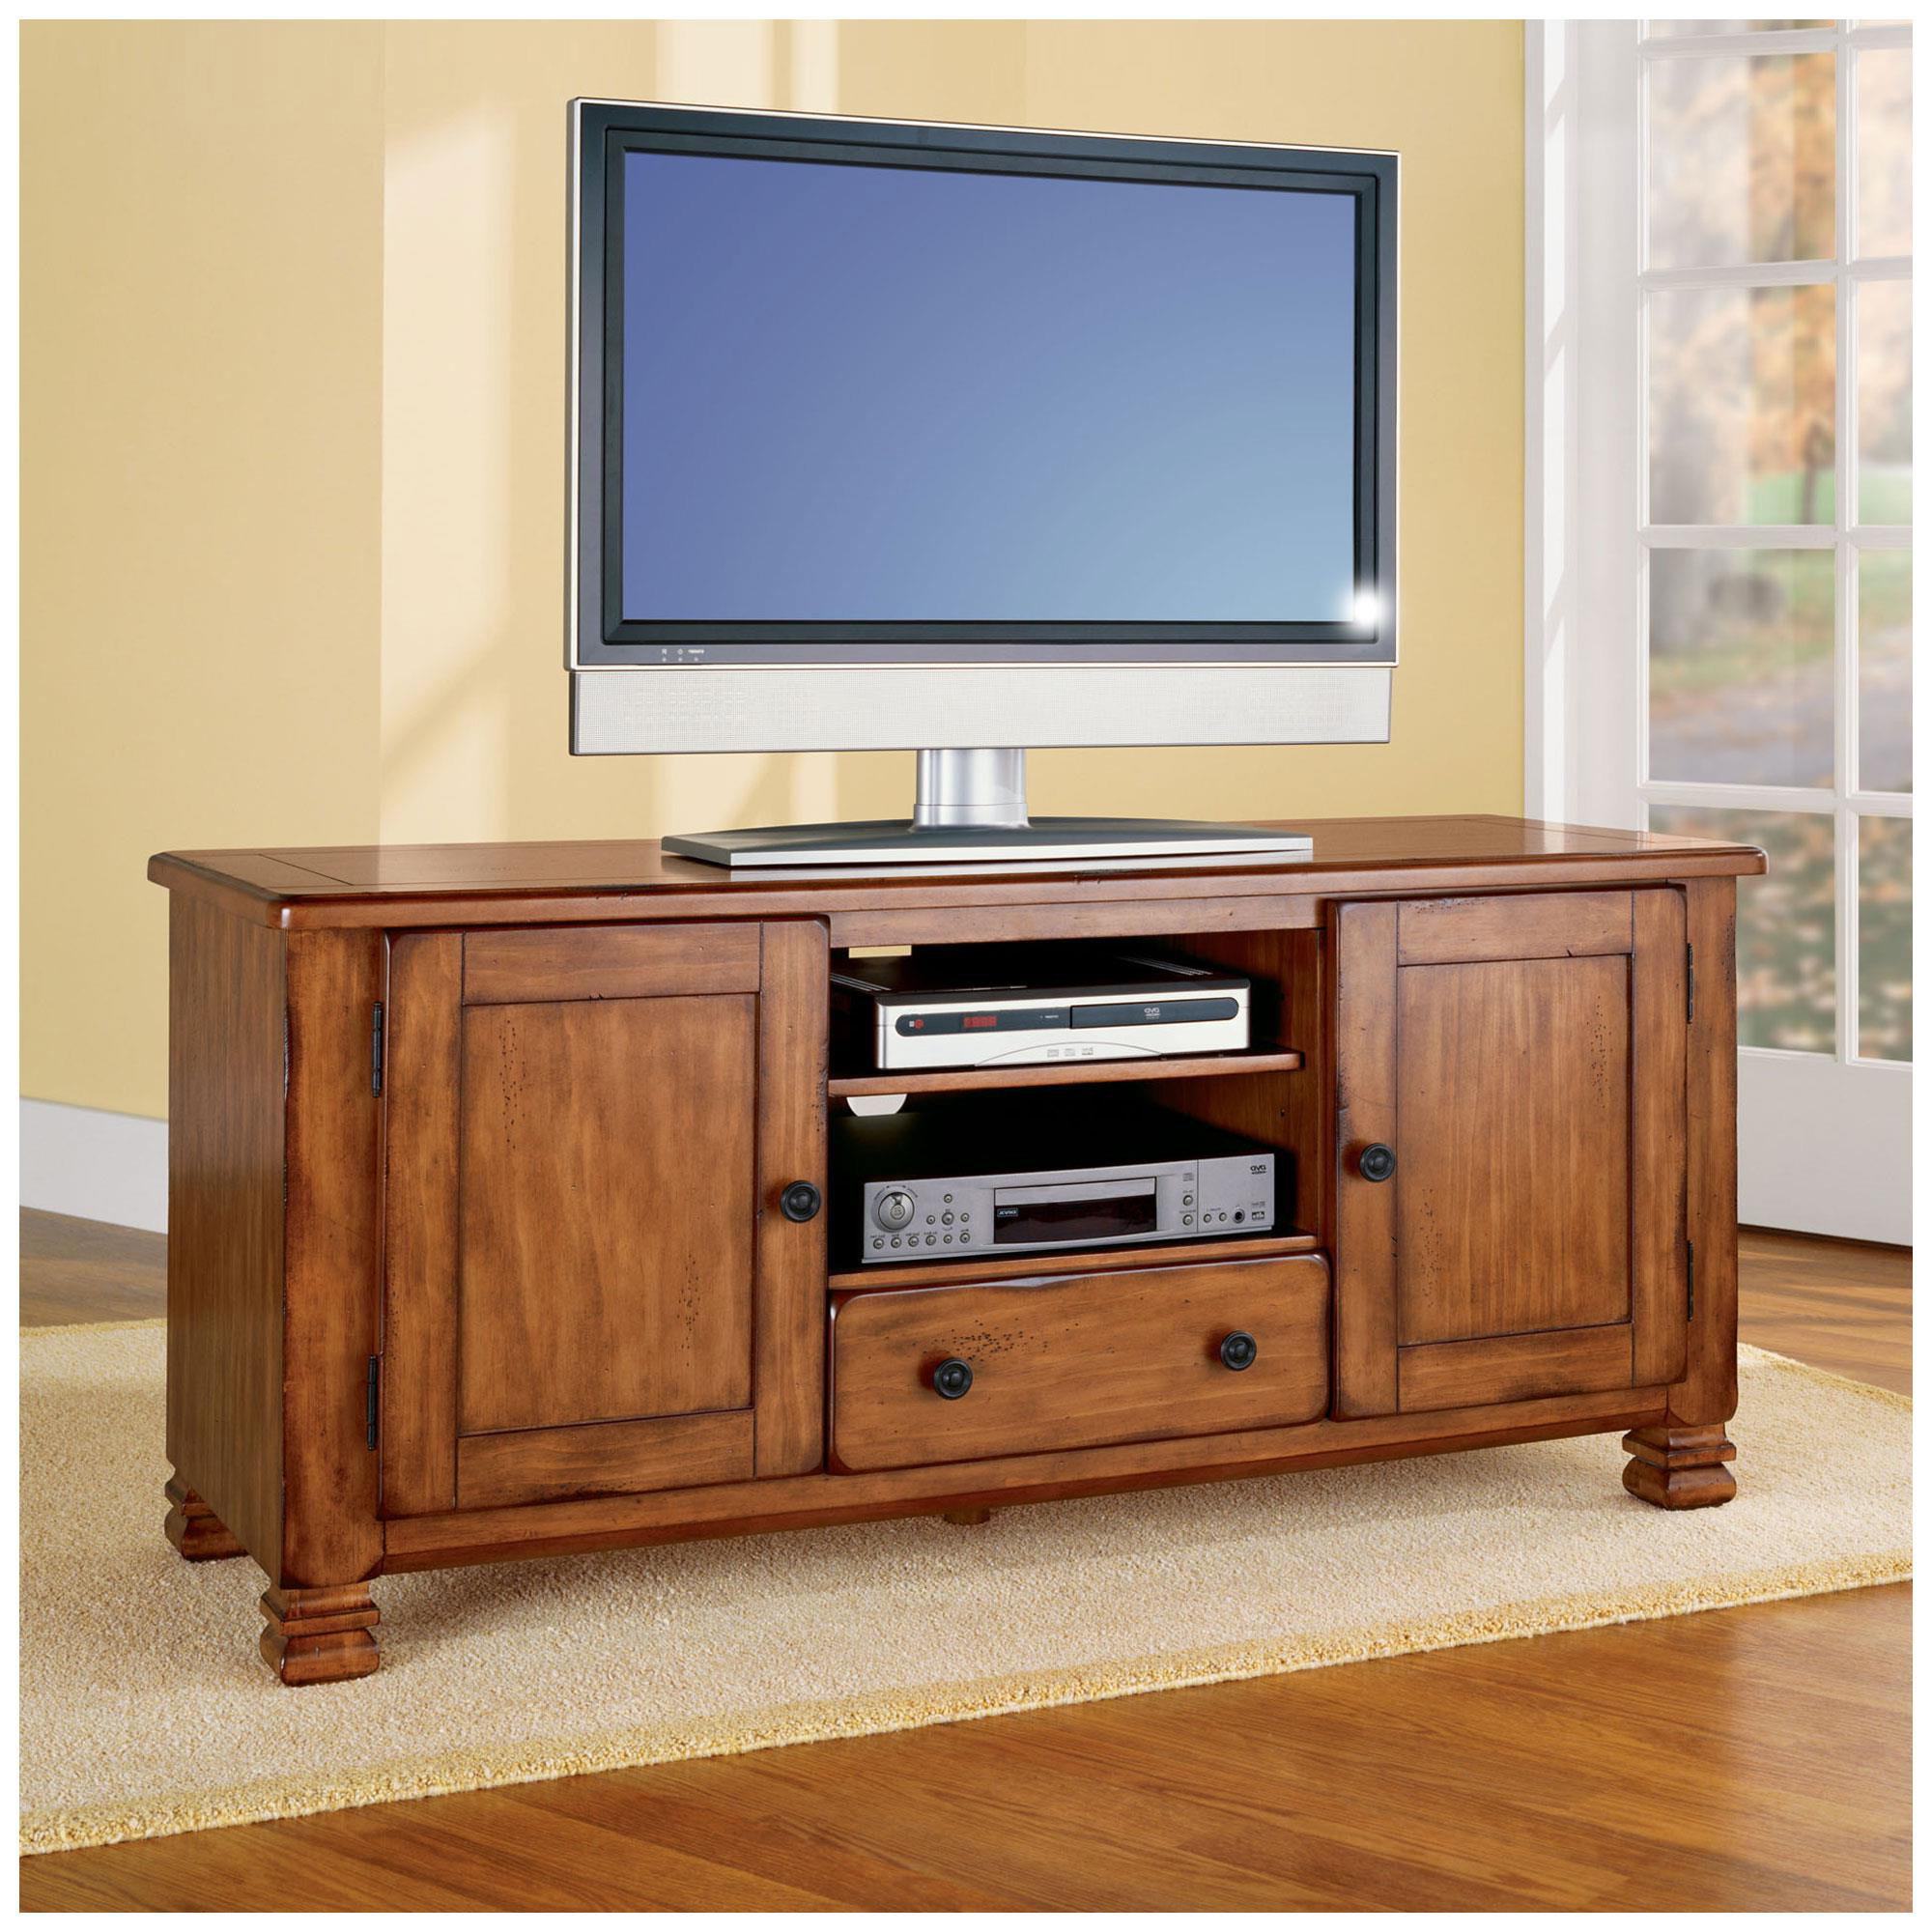 Best And Newest Beautiful Oak Tv Stands For A Beautiful Home – Furnish Ideas Pertaining To Oak Tv Stands (Gallery 12 of 20)